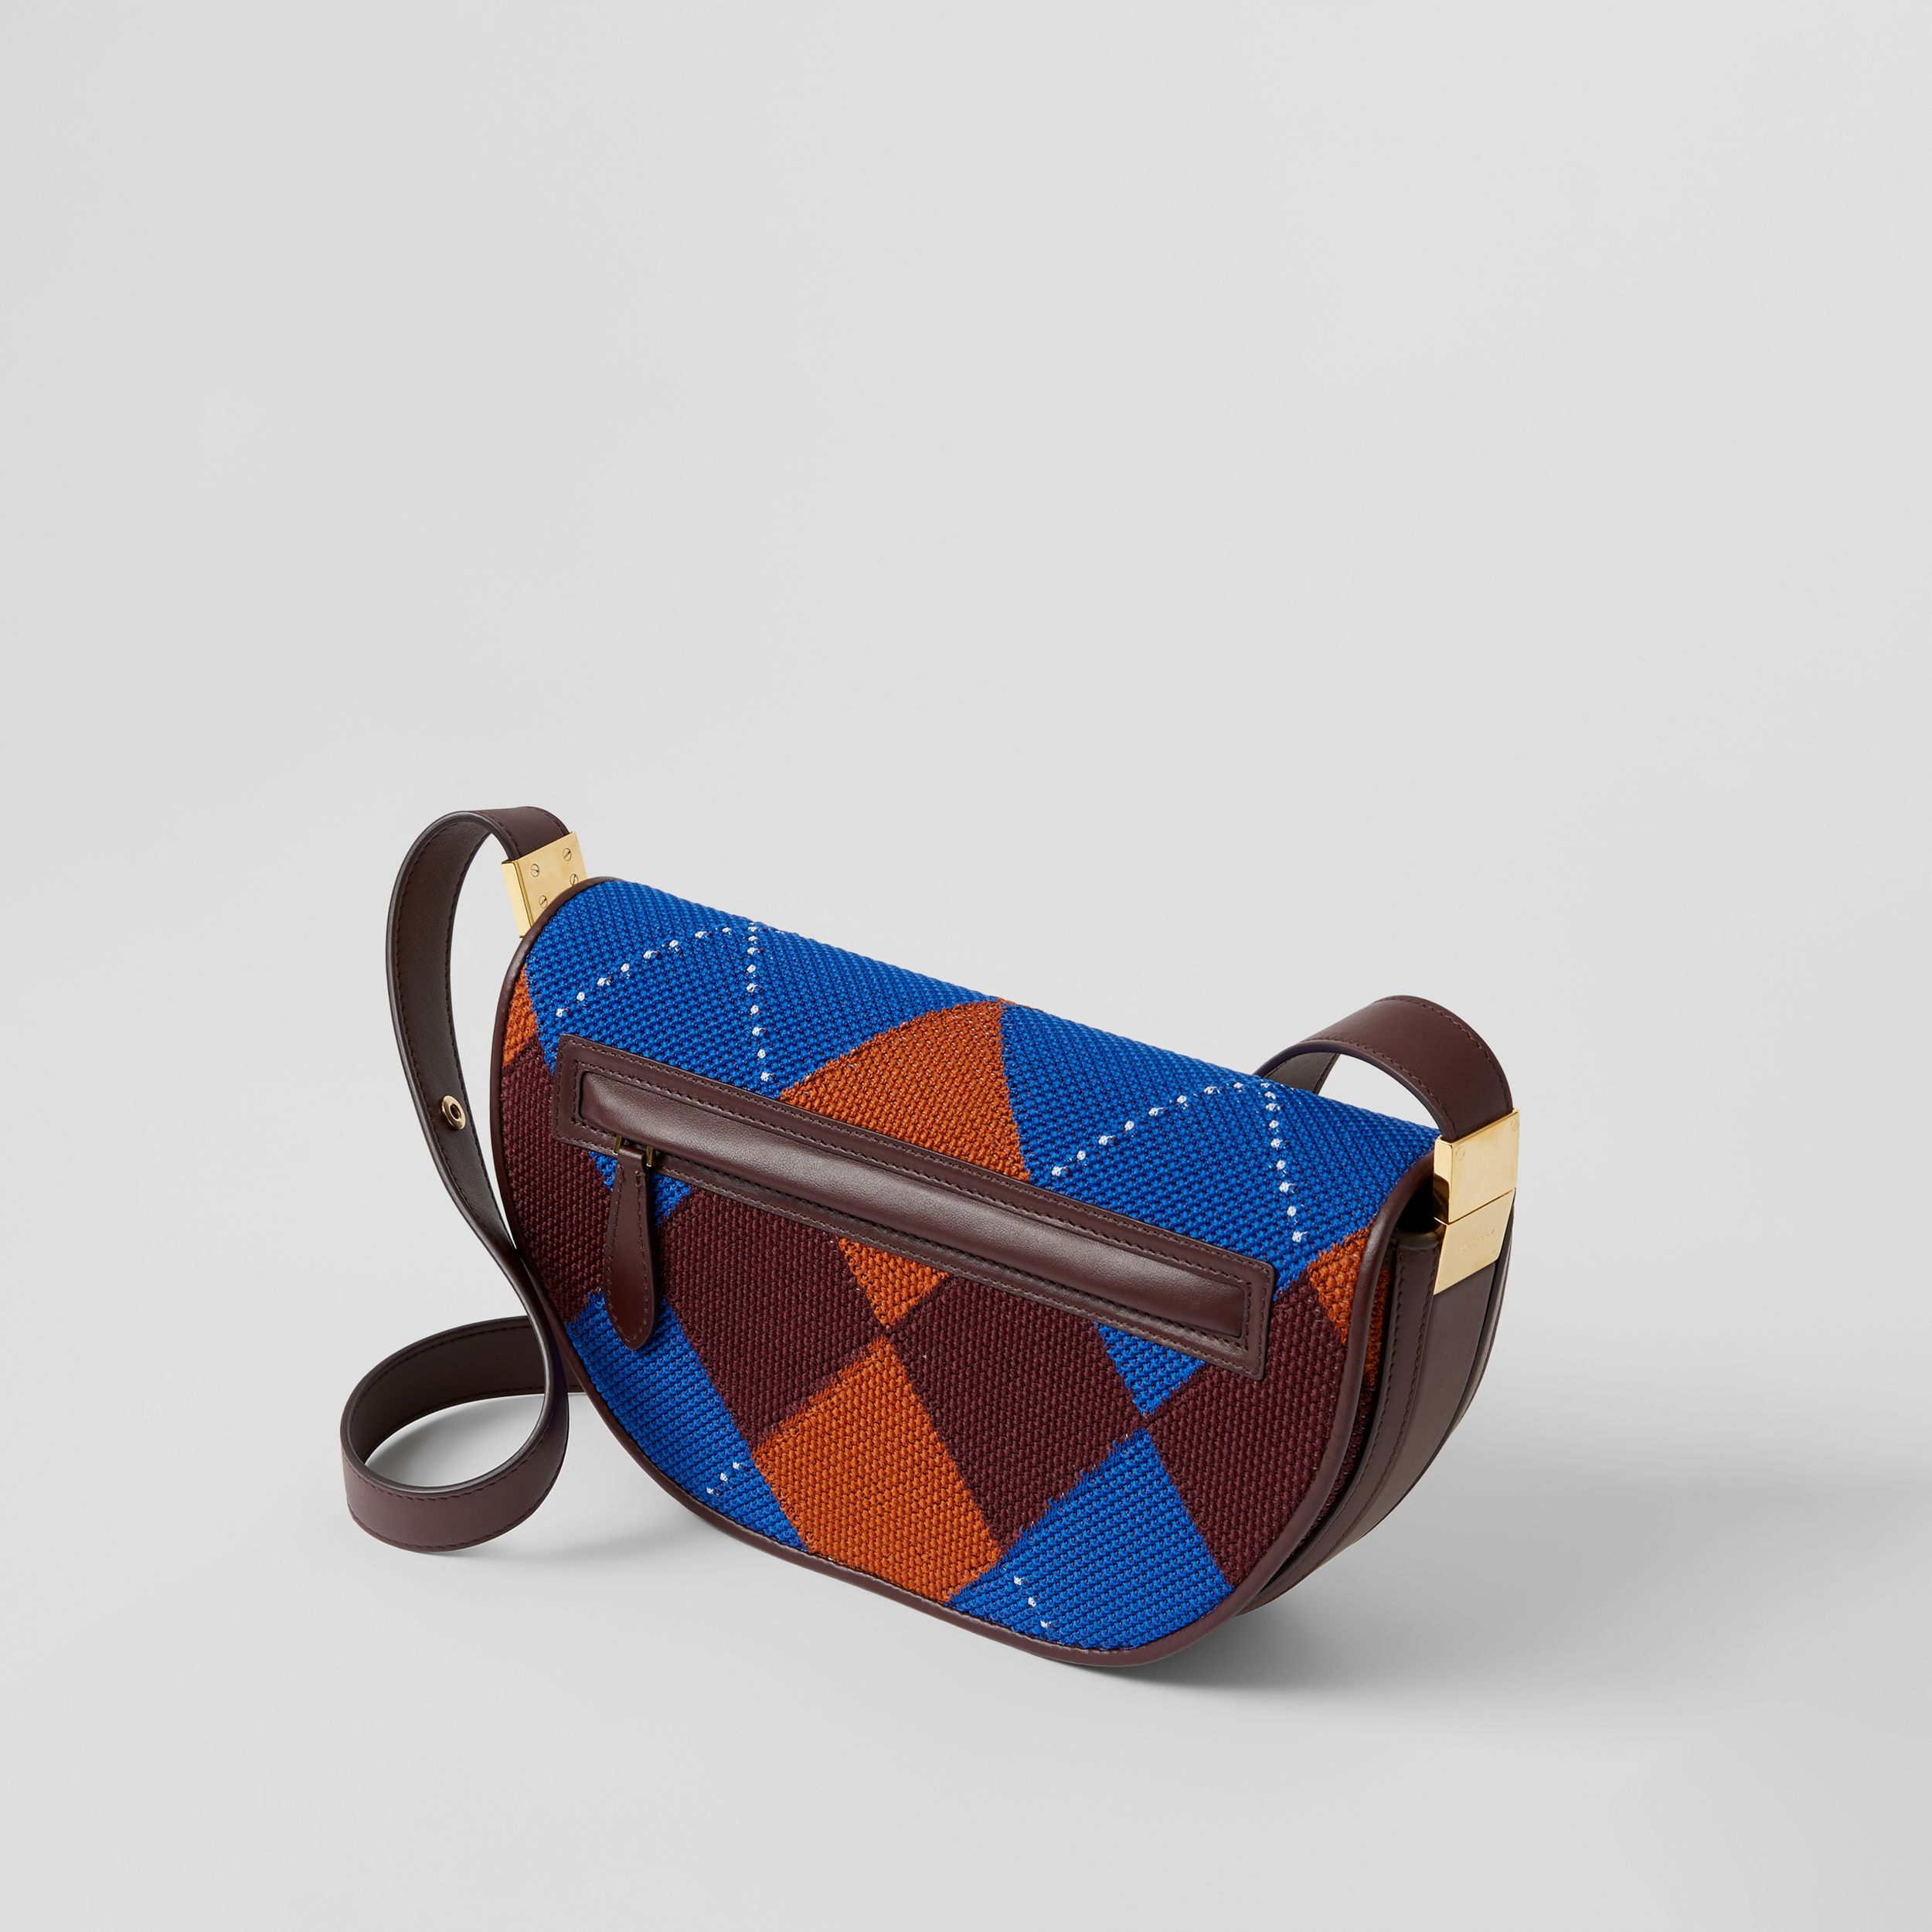 Small Argyle Knit and Leather Olympia Bag in Bright Blue - Women | Burberry Hong Kong S.A.R. - 4